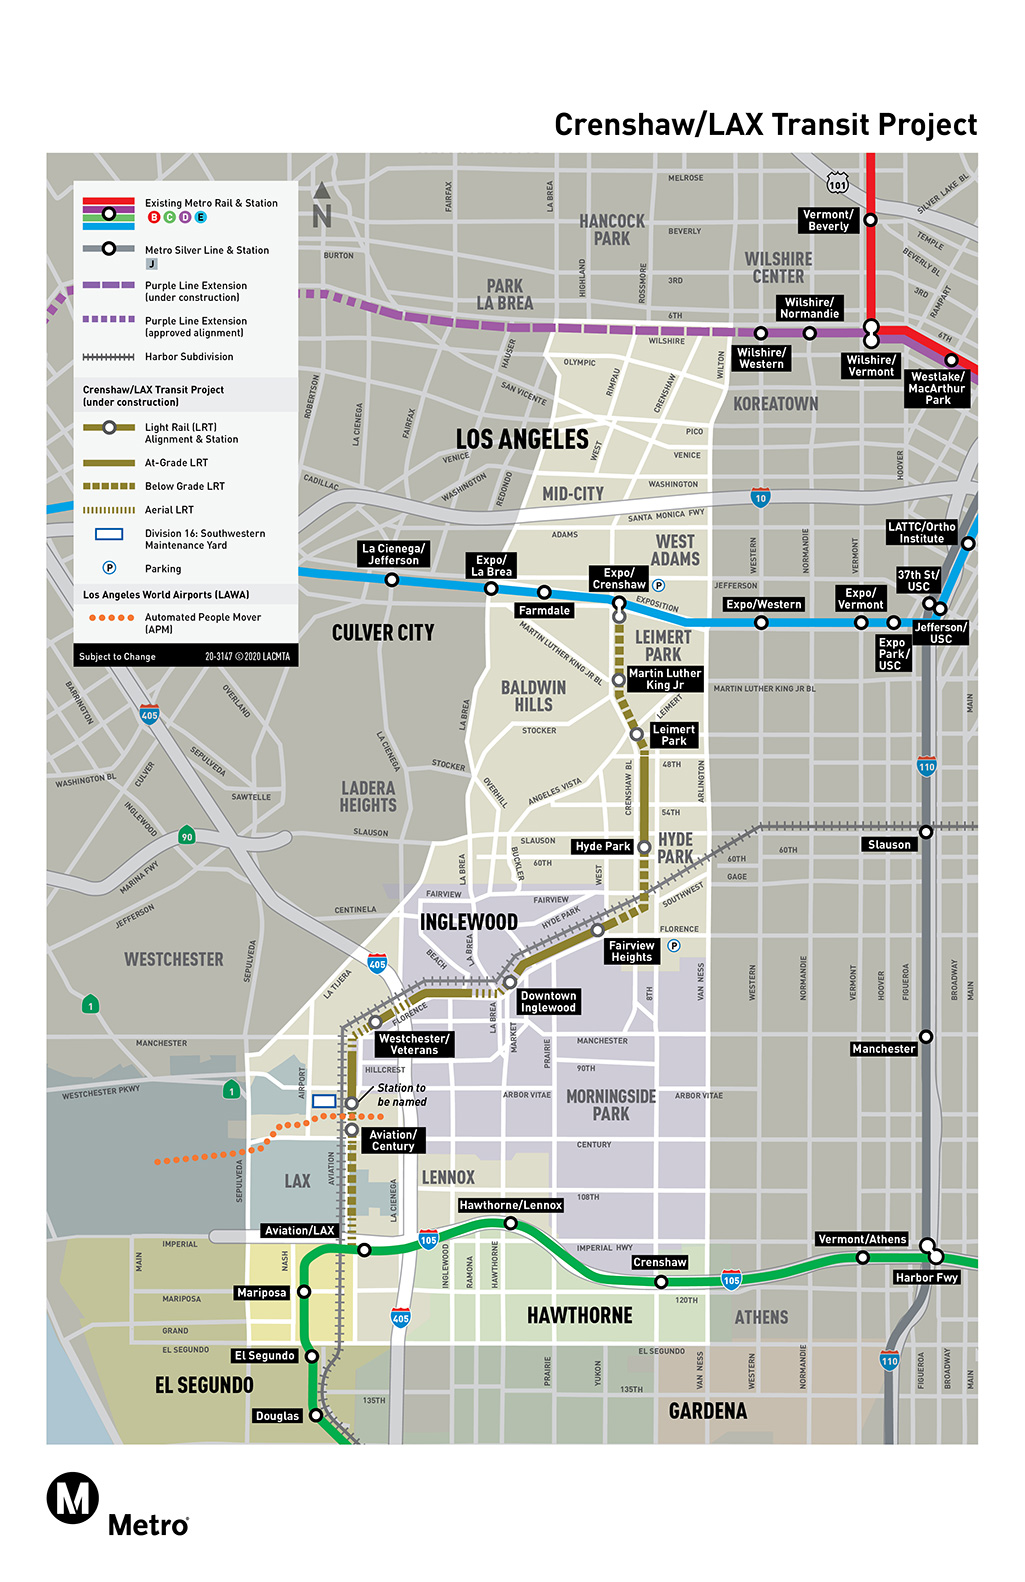 Crenshaw/LAX Project Map